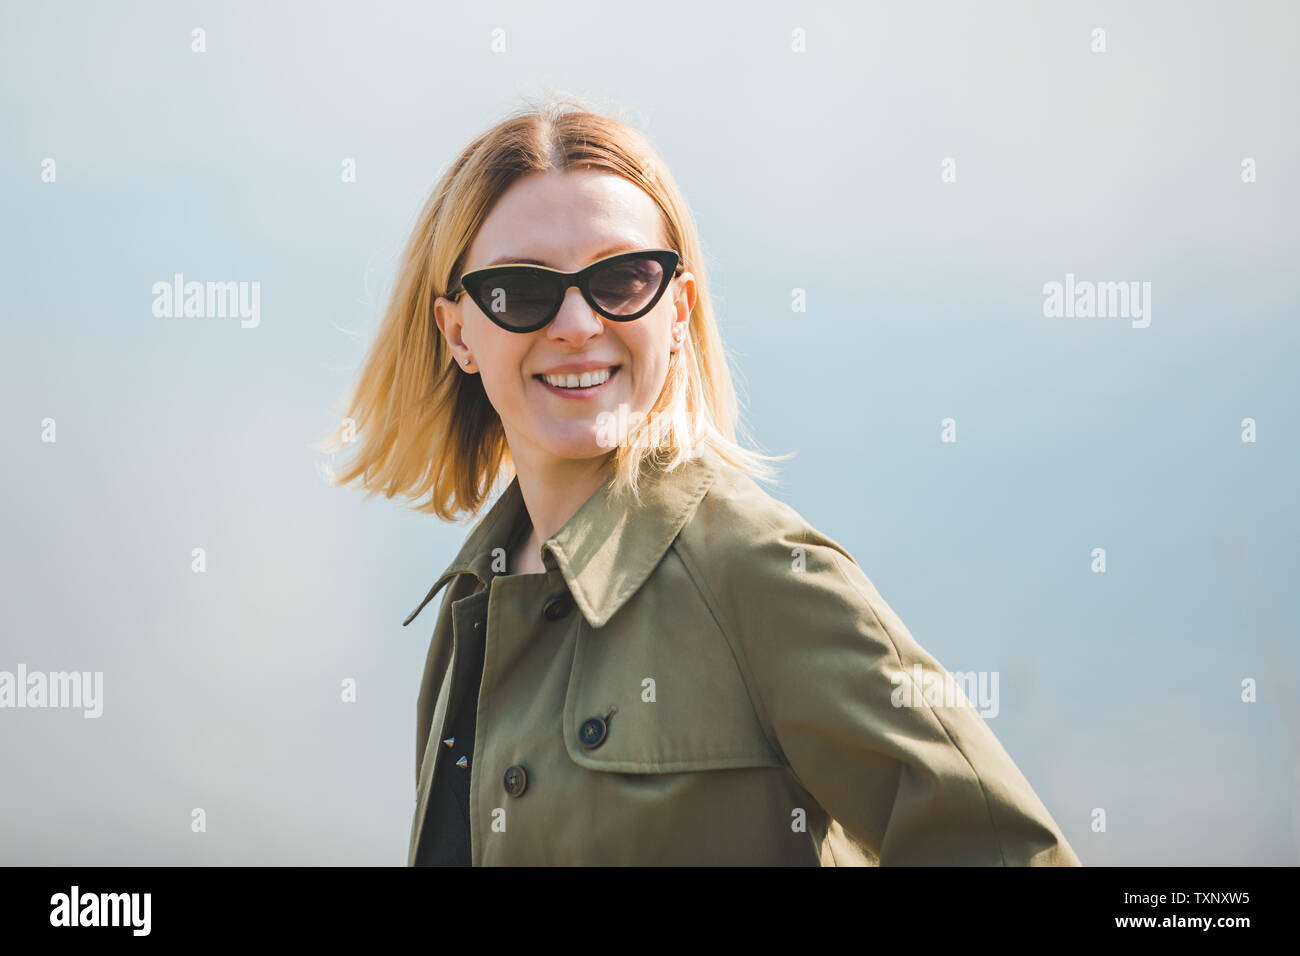 portrait of pretty smiling blond woman in sunglasses and coat. sunny day - Stock Image